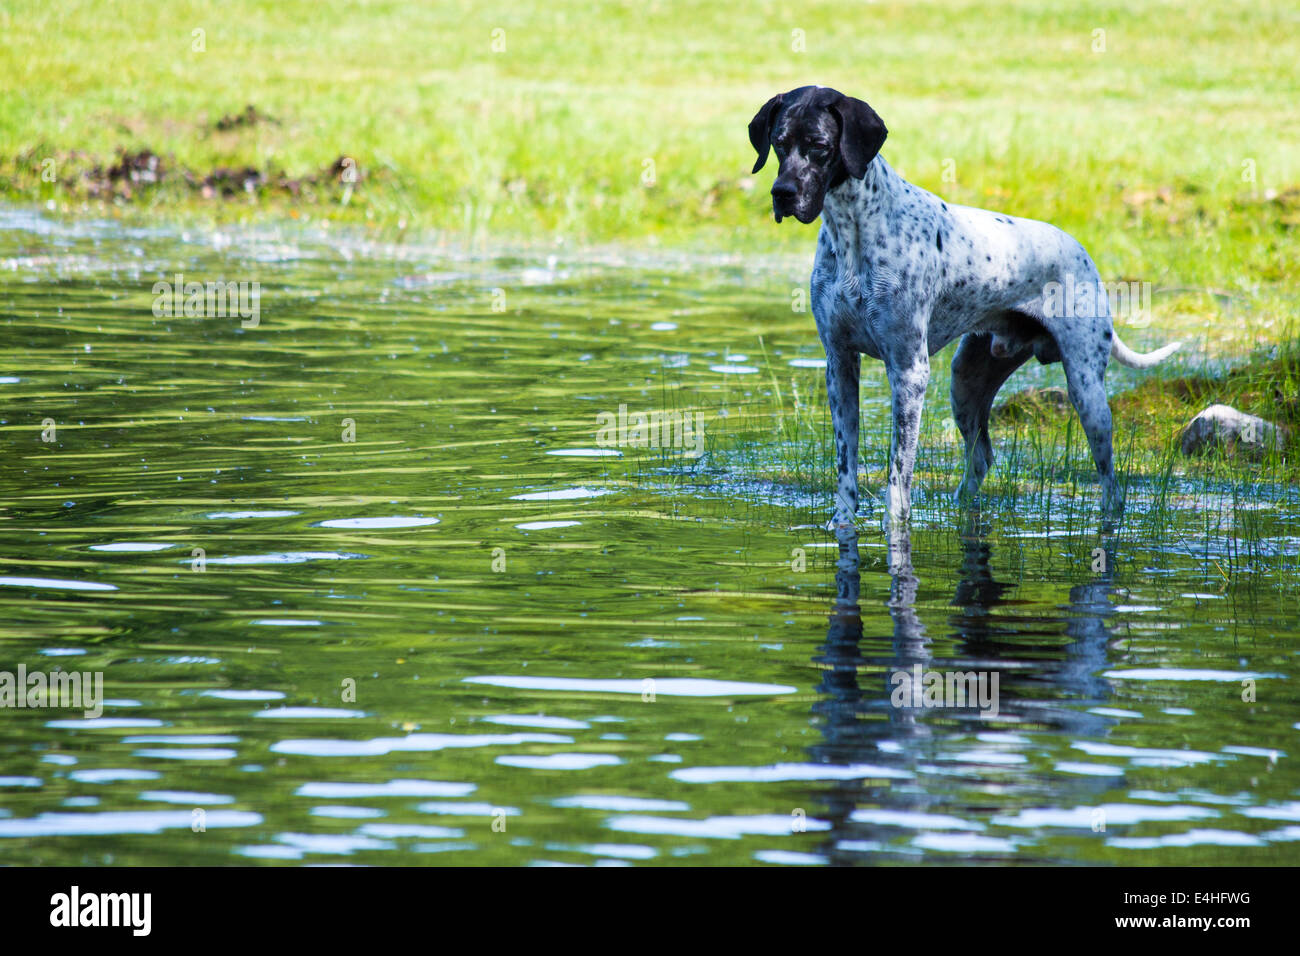 This dog was fascinated with watching the tadpoles in the pond - Stock Image